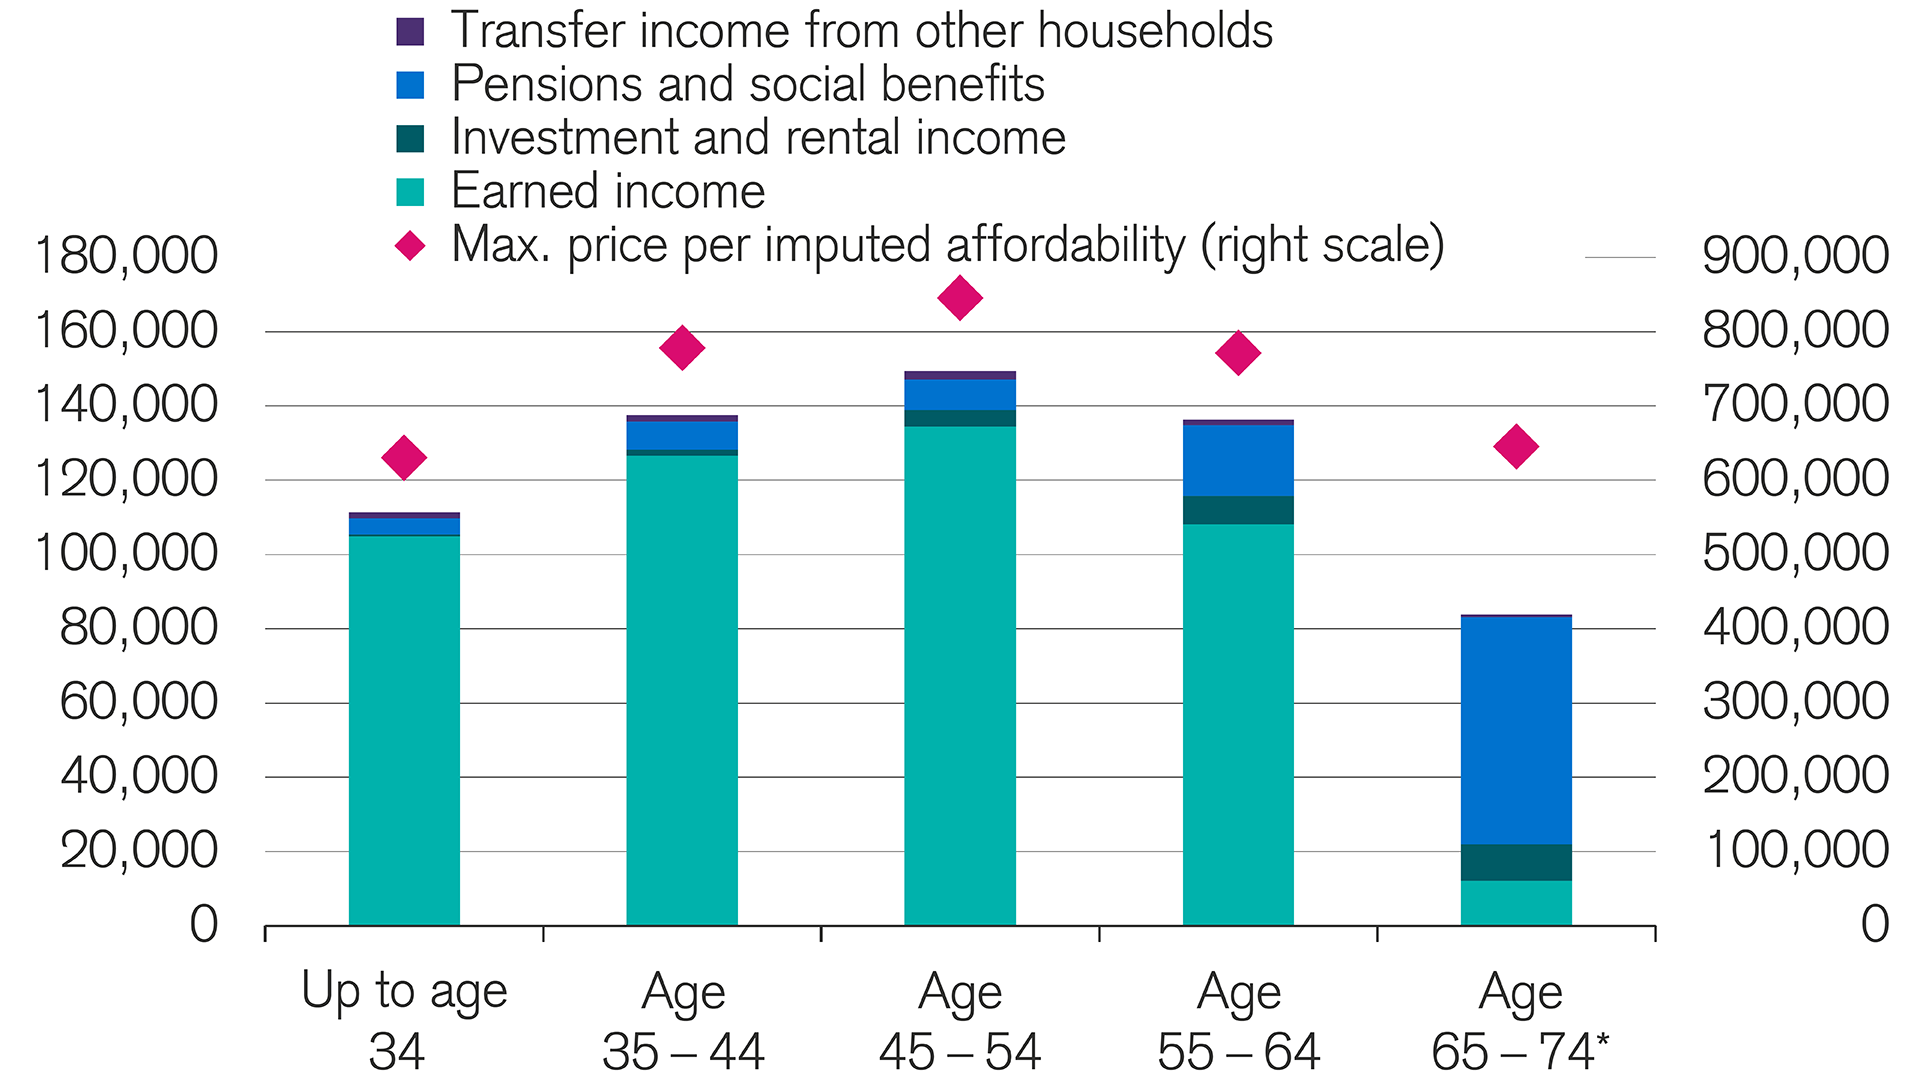 Financing of home ownership becoming more difficult for young people and senior citizens